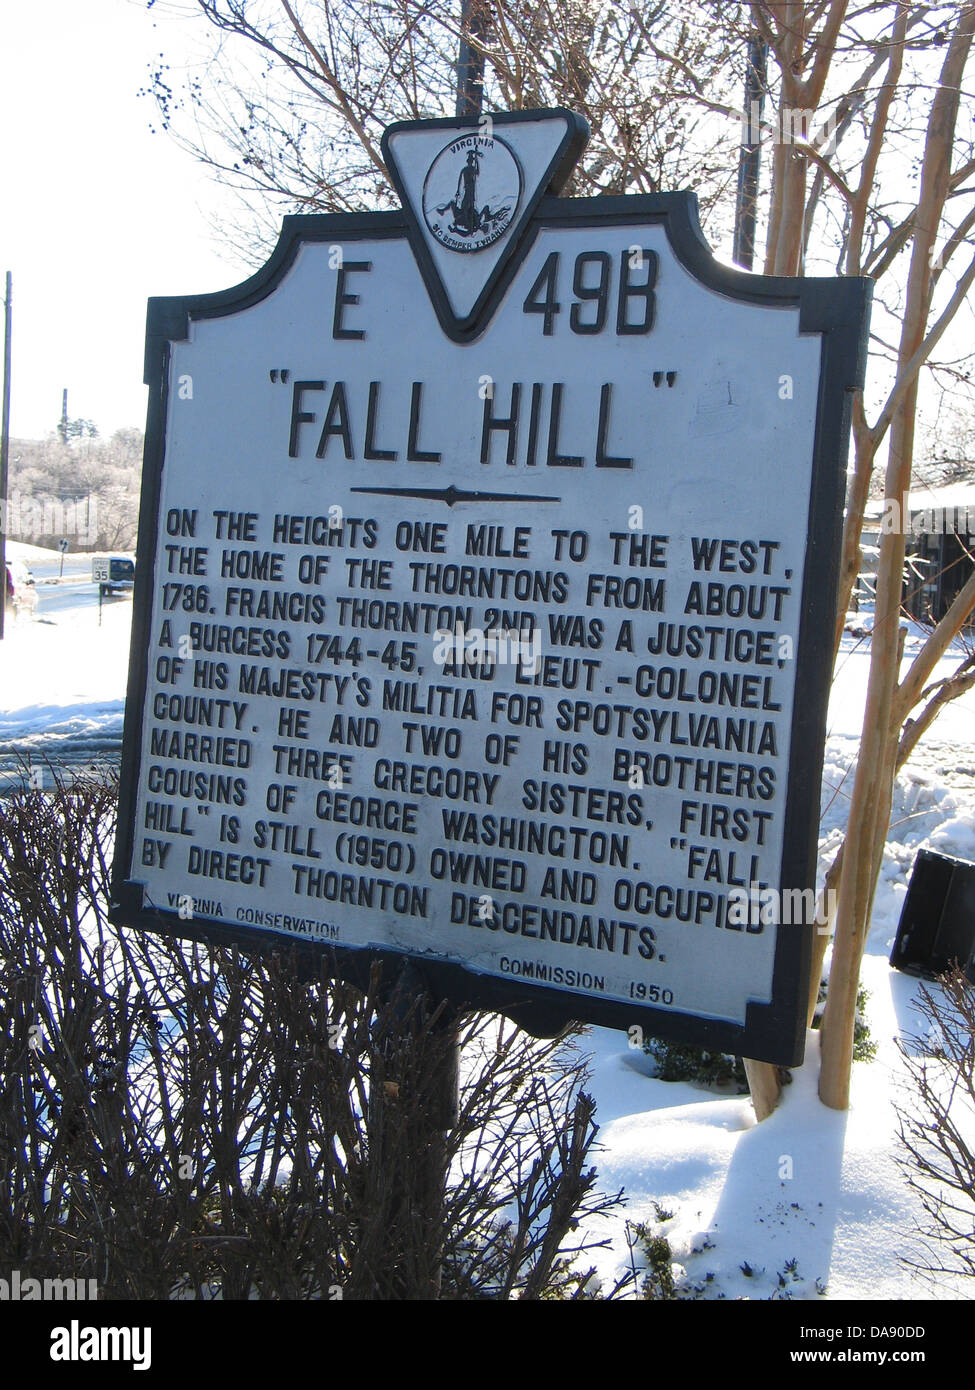 FALL HILL On the heights one mile to the west, the home of